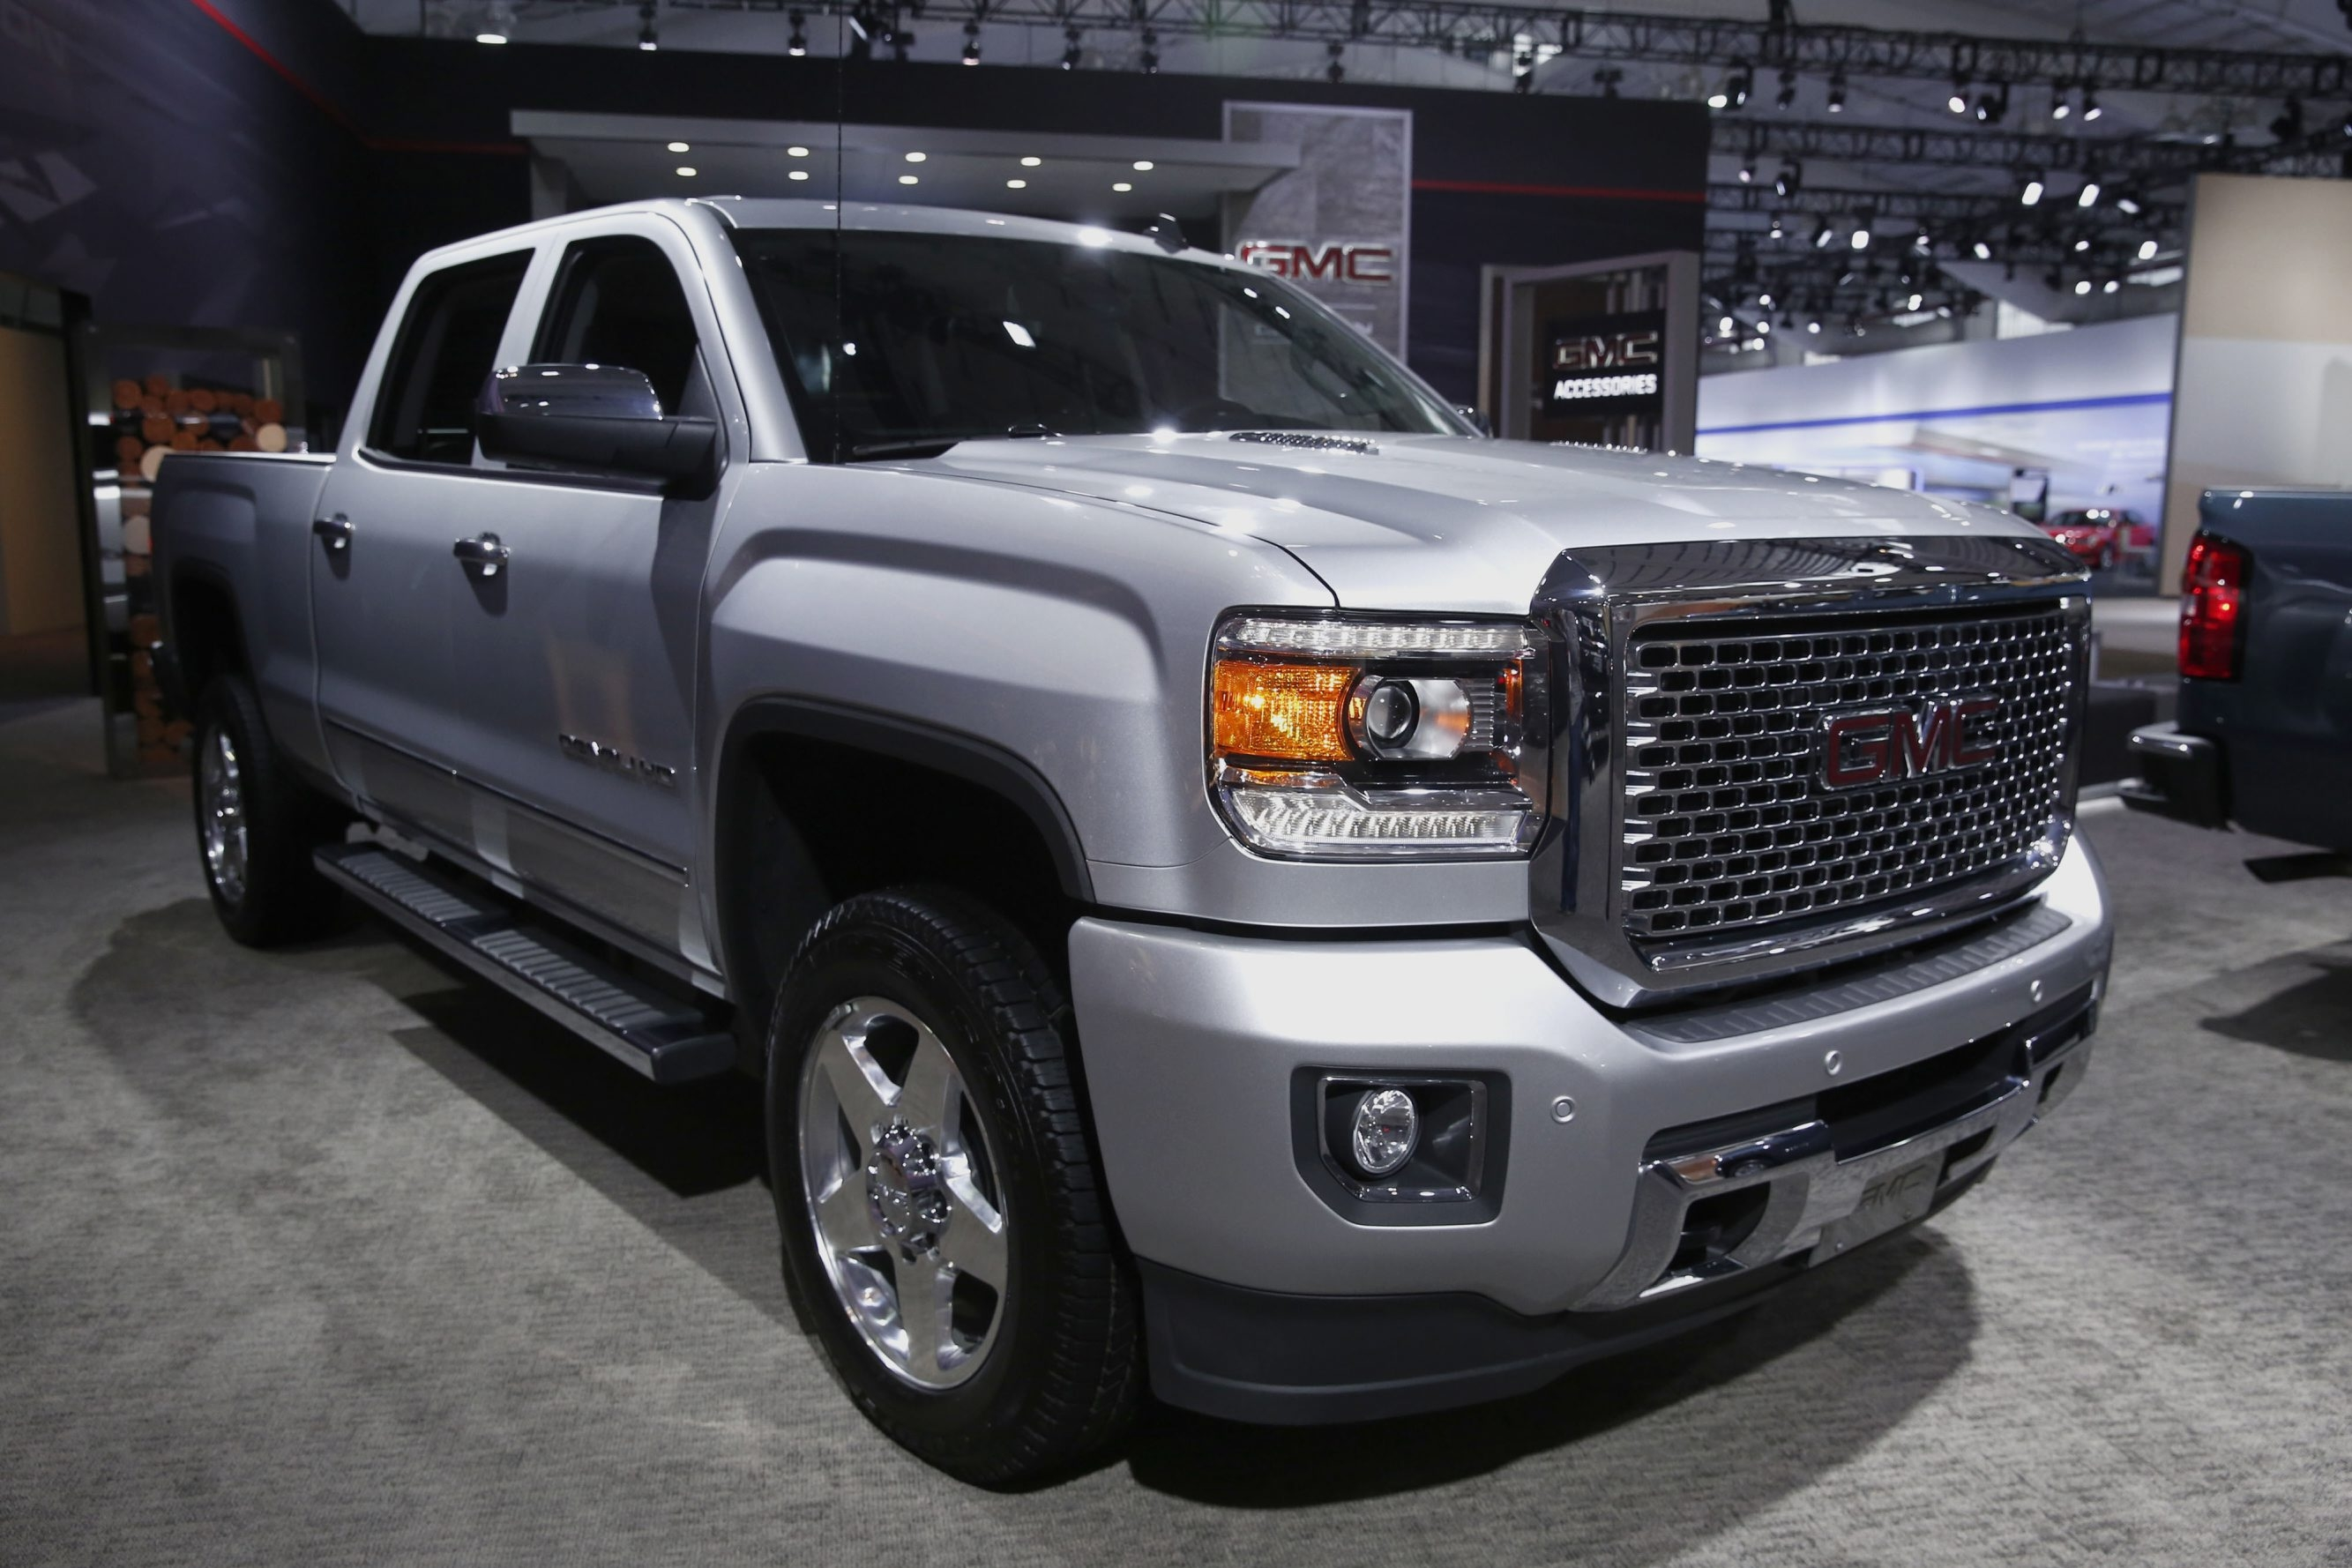 Bigger, less-efficient vehicles, such as this 2015 GMC Sierra pickup truck, displayed during the 2014 New York International Auto Show in New York in April, may get a bump in sales thanks to lower gasoline prices.